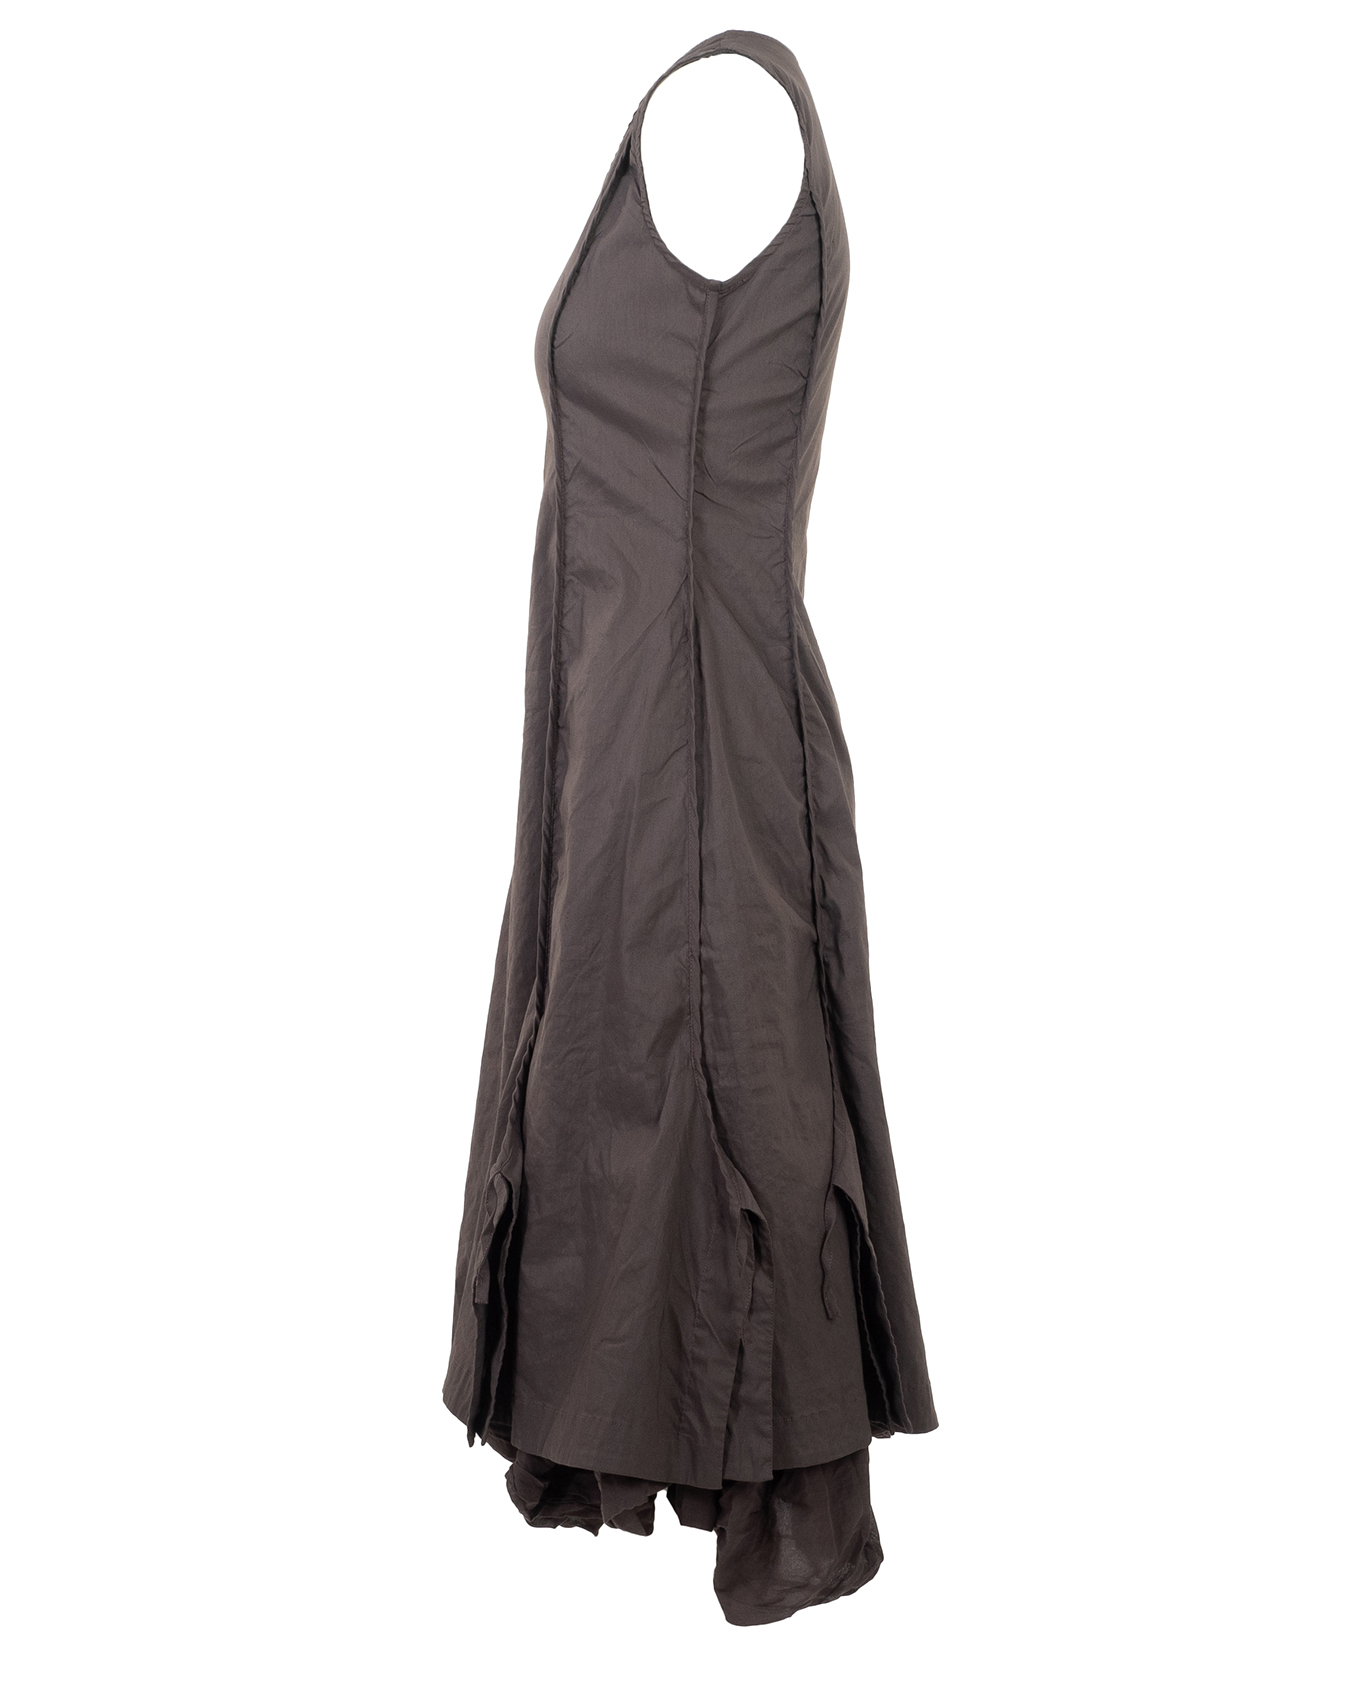 DRESS 21 21 21   Hot Selection   purchase online